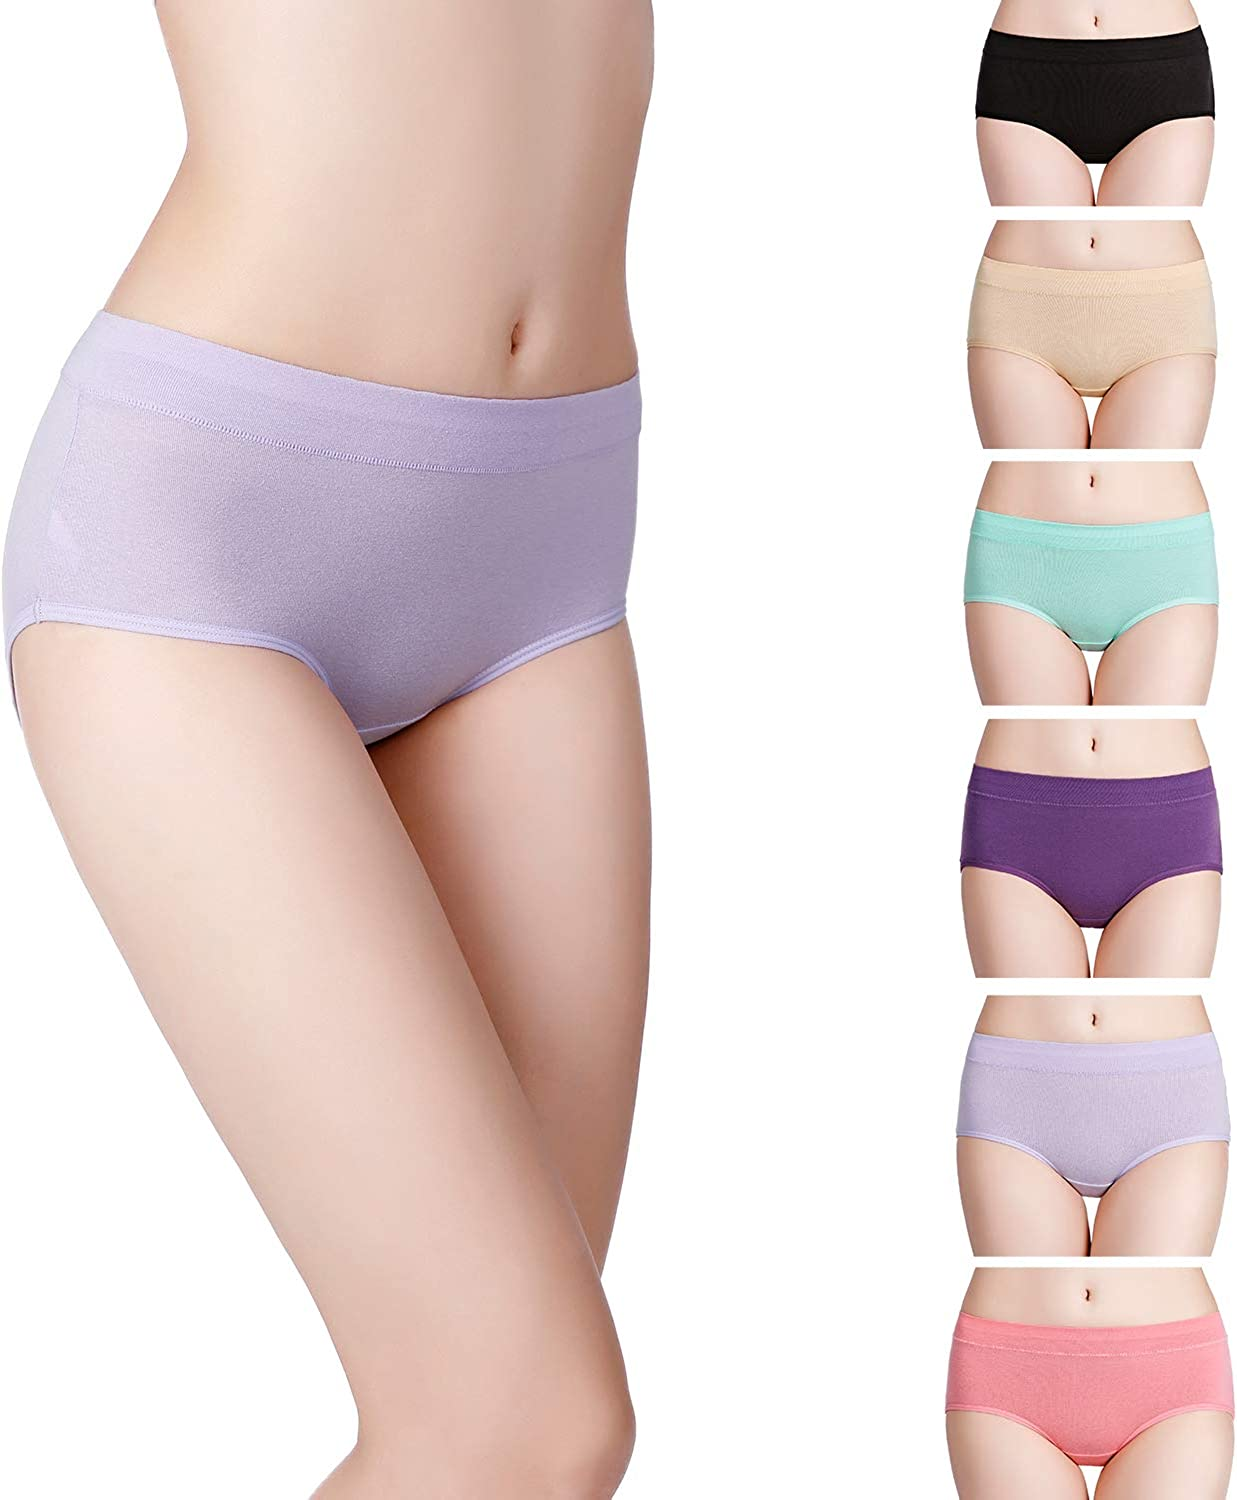 Fulyou Womens Cotton Knicker Mid Rise Ladies Briefs Multipack Soft Stretch Comfortable Underwear for Women